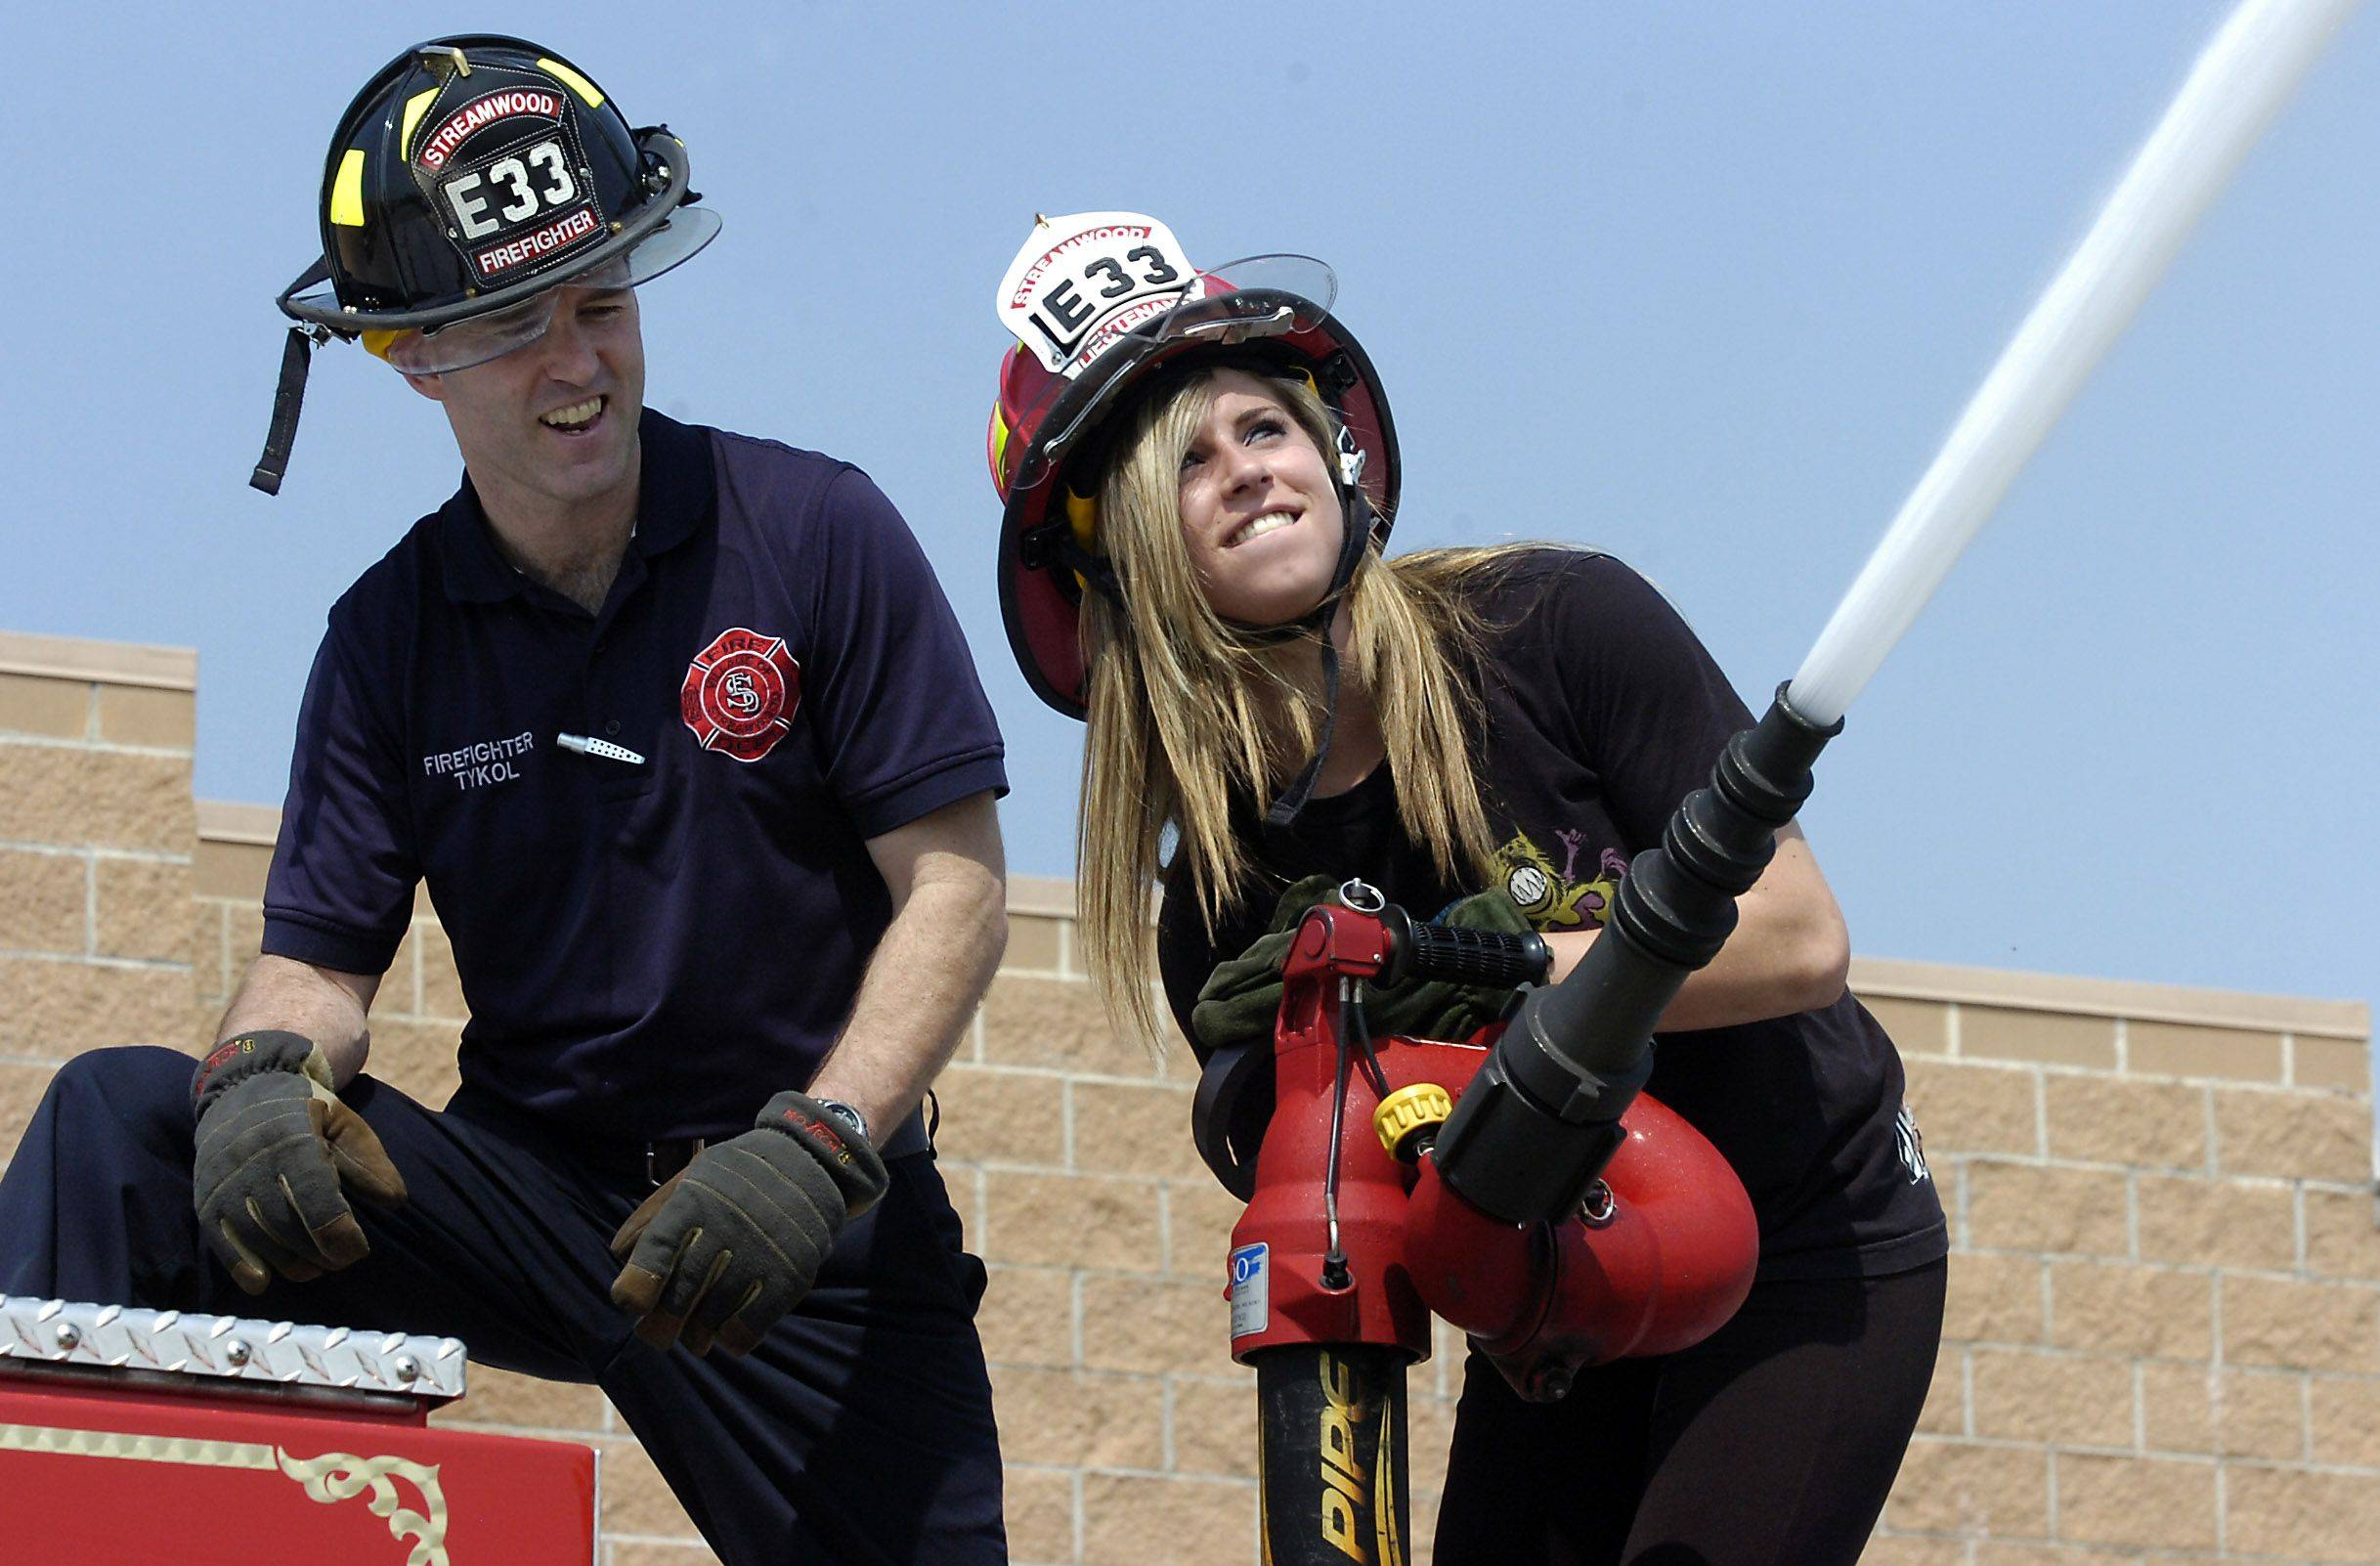 Streamwood High School senior Brianna Bogdajewicz, 18, shadows firefighter John Tykol Wednesday during the school's 30th annual Student Government Day.